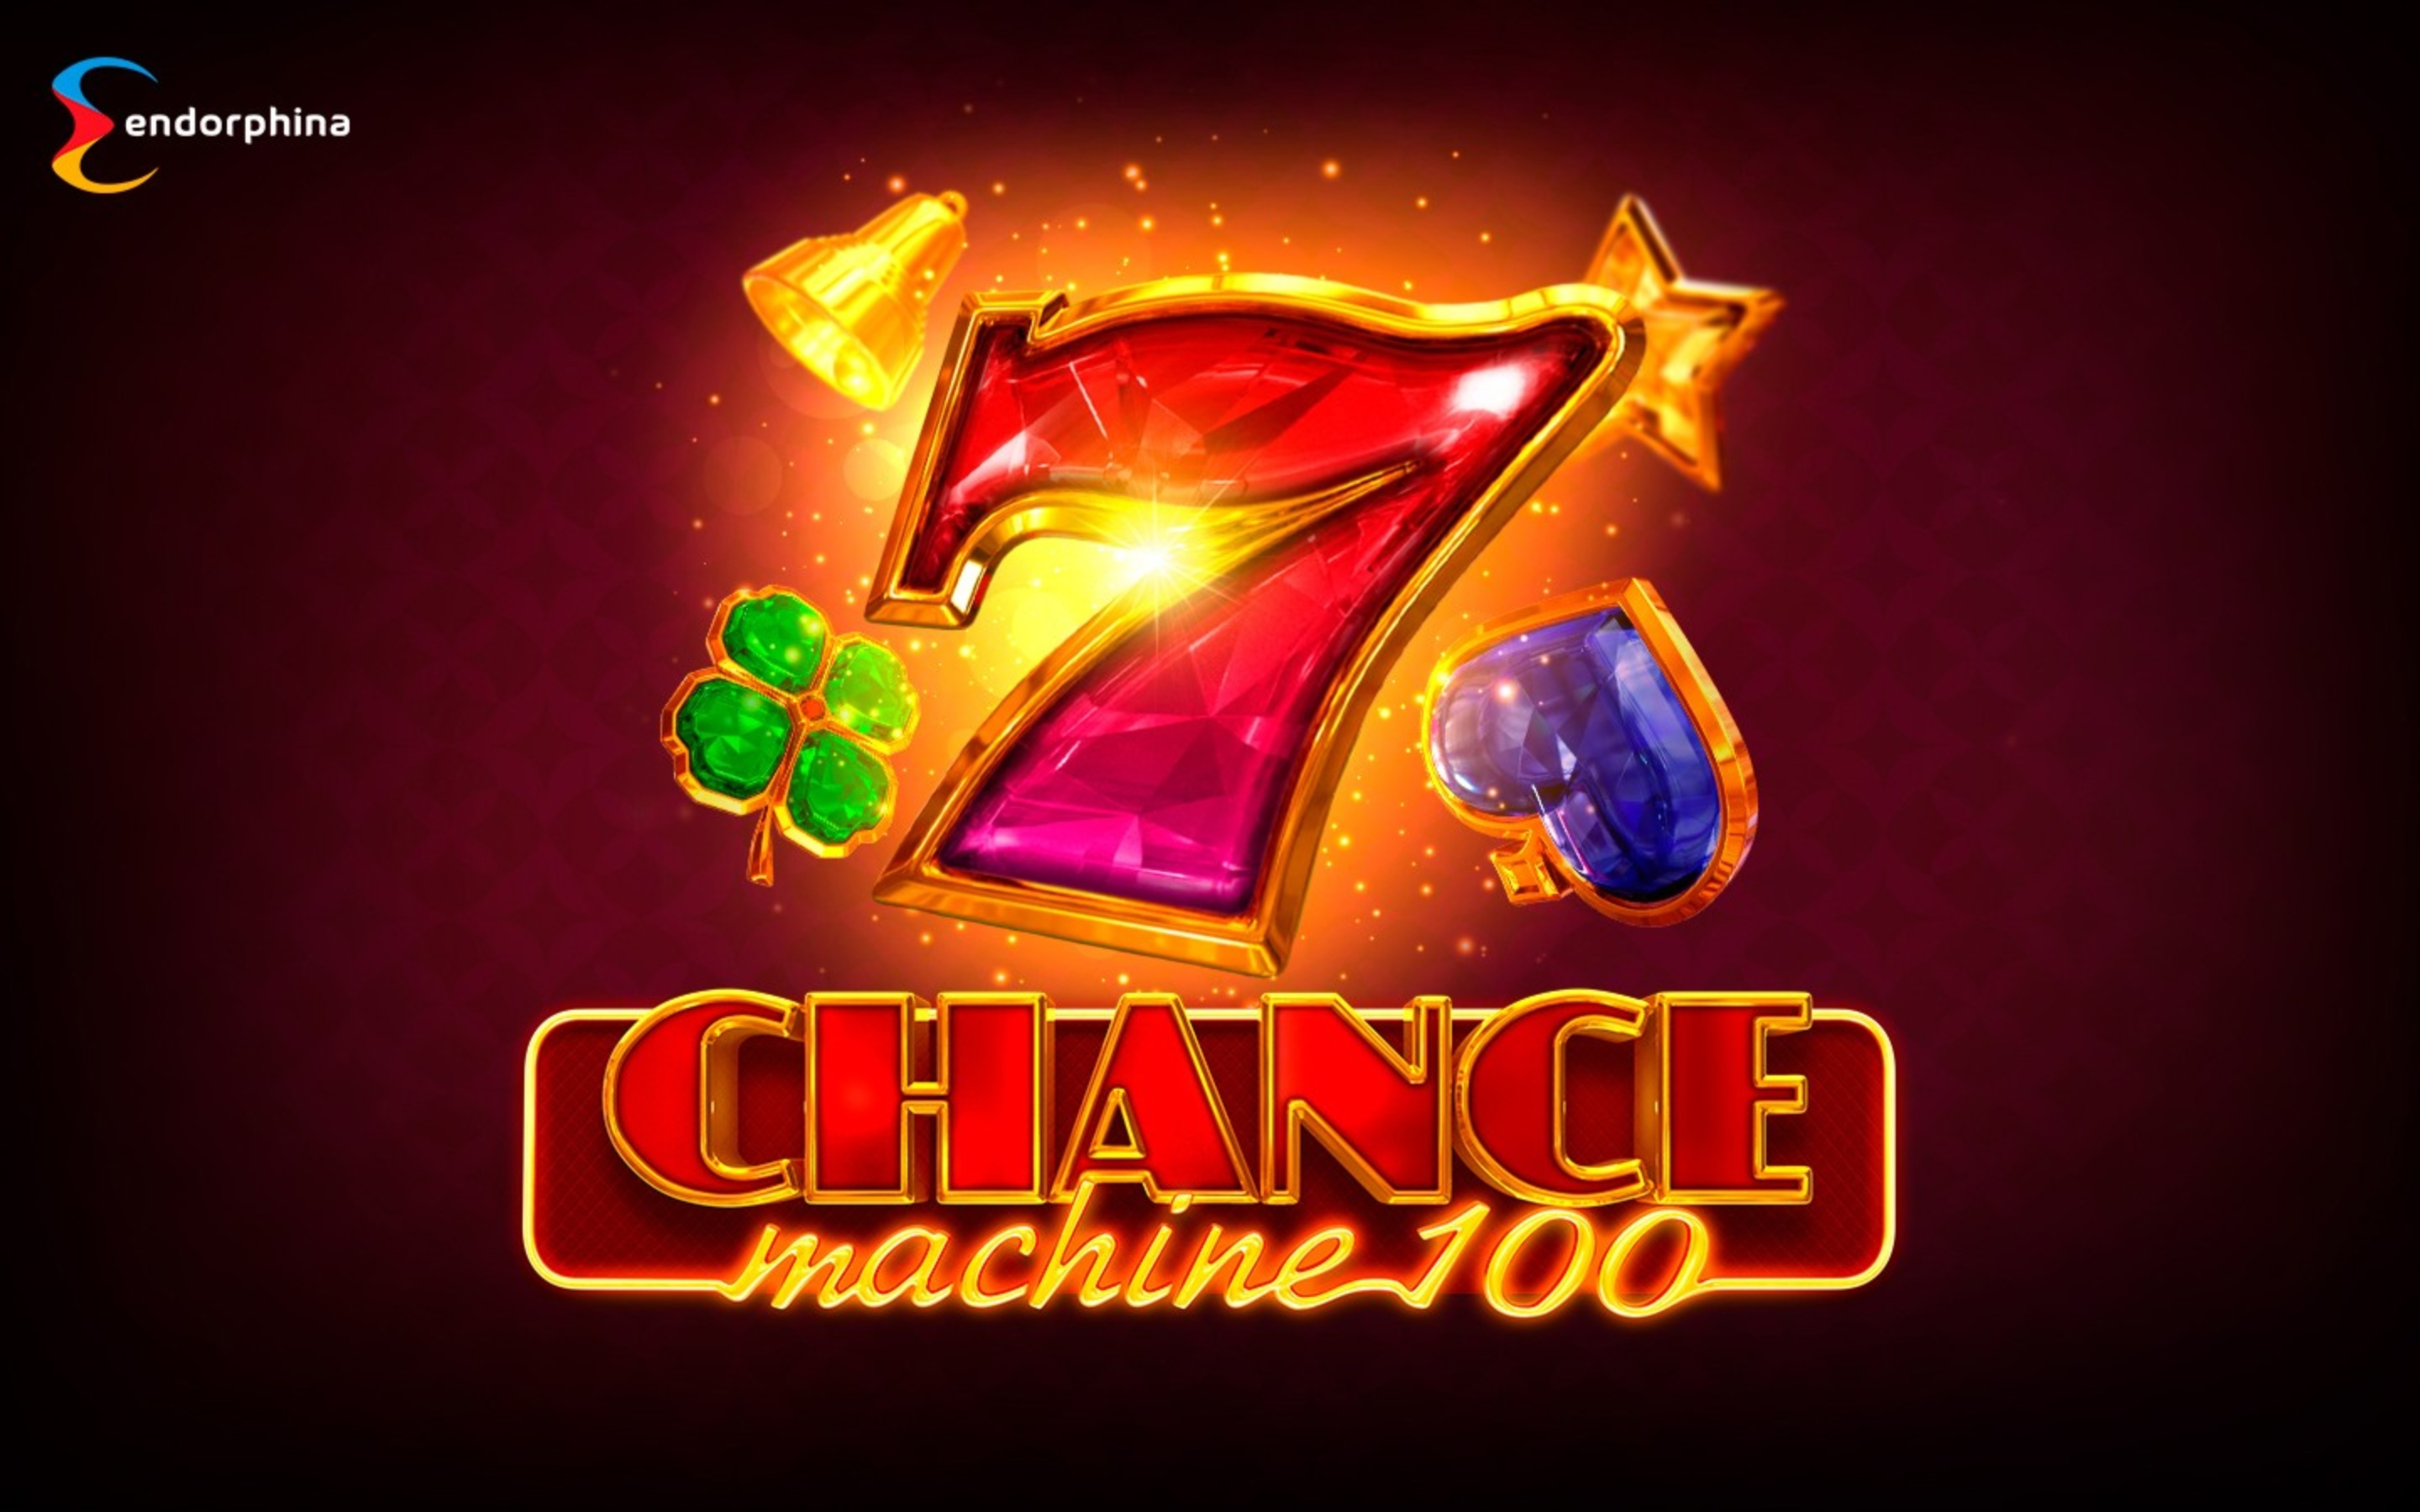 The Chance Machine 100 Online Slot Demo Game by Endorphina